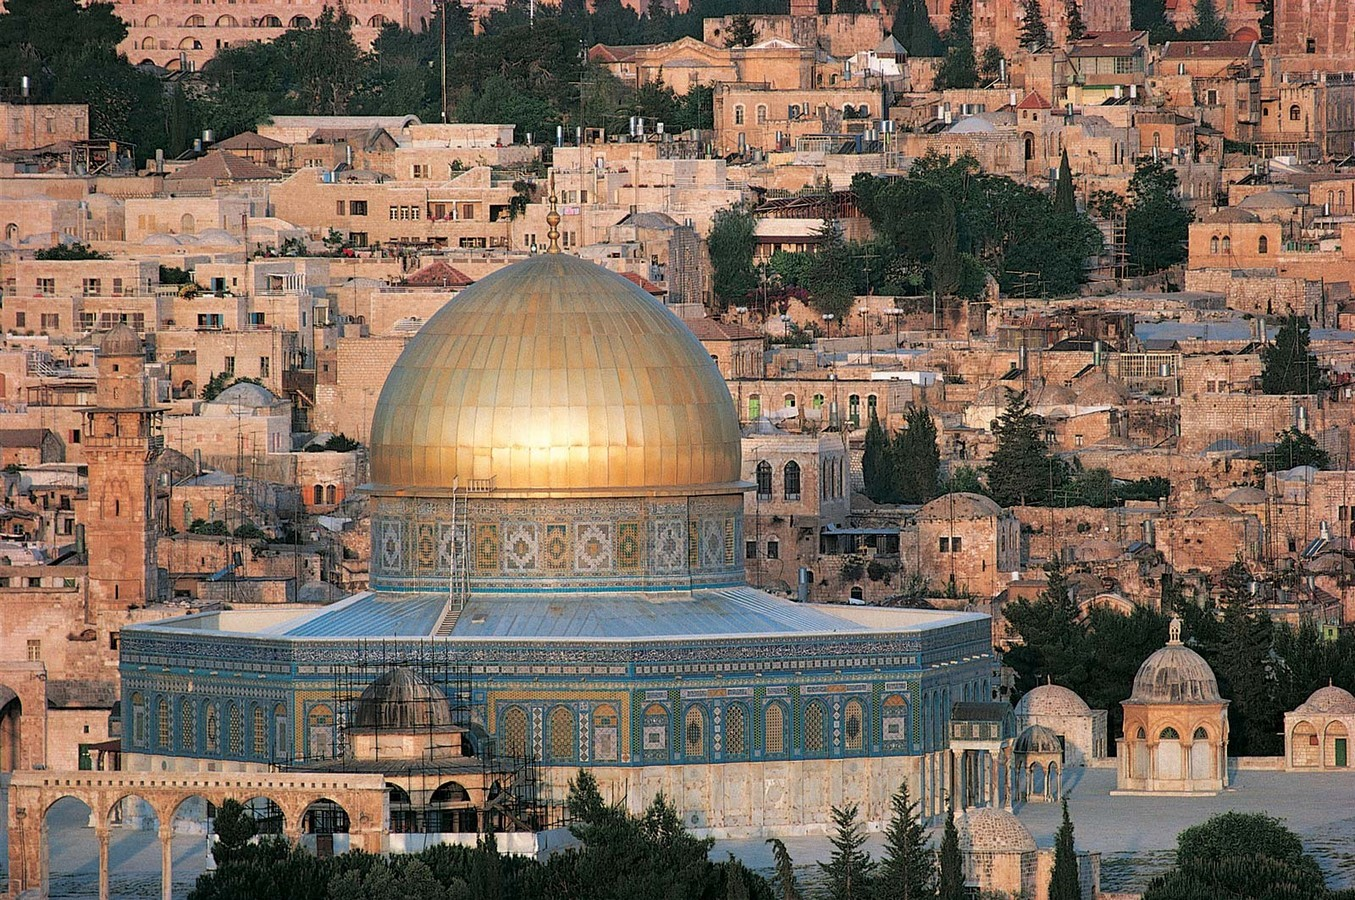 DOME OF THE ROCK - Sheet1